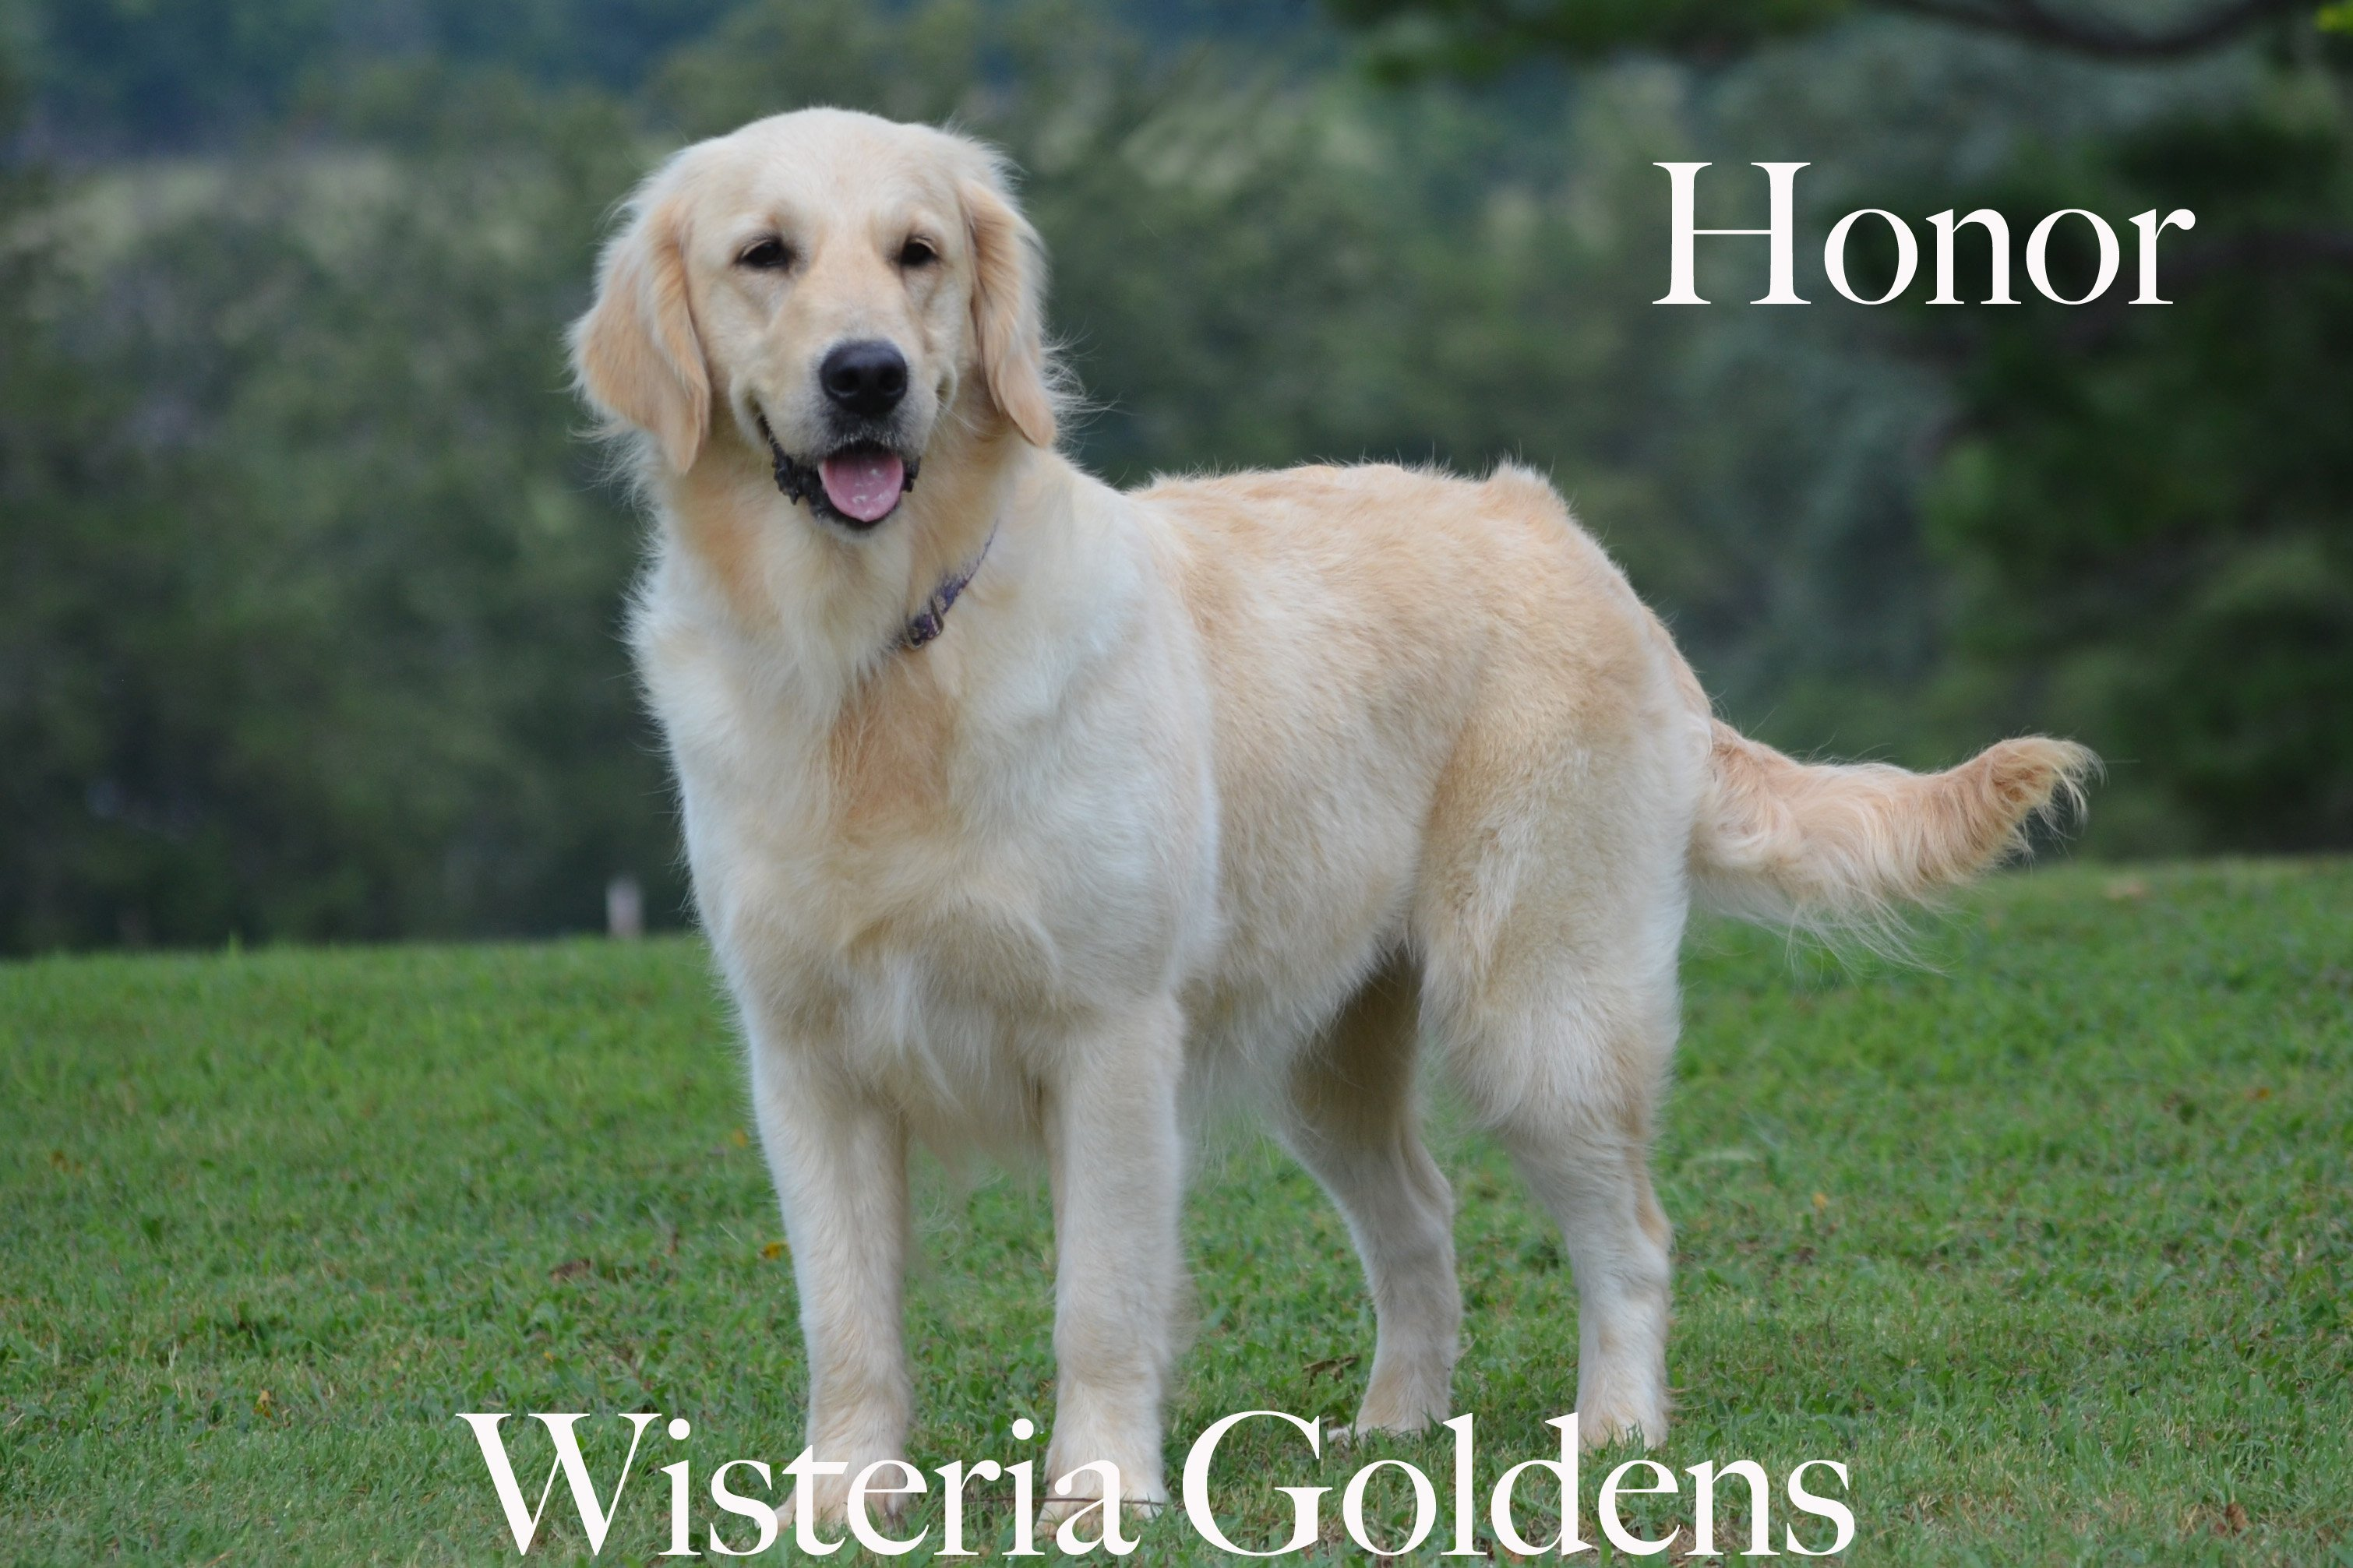 Honor_0149-full-english-creme-golden-retriever-wisteria-goldens